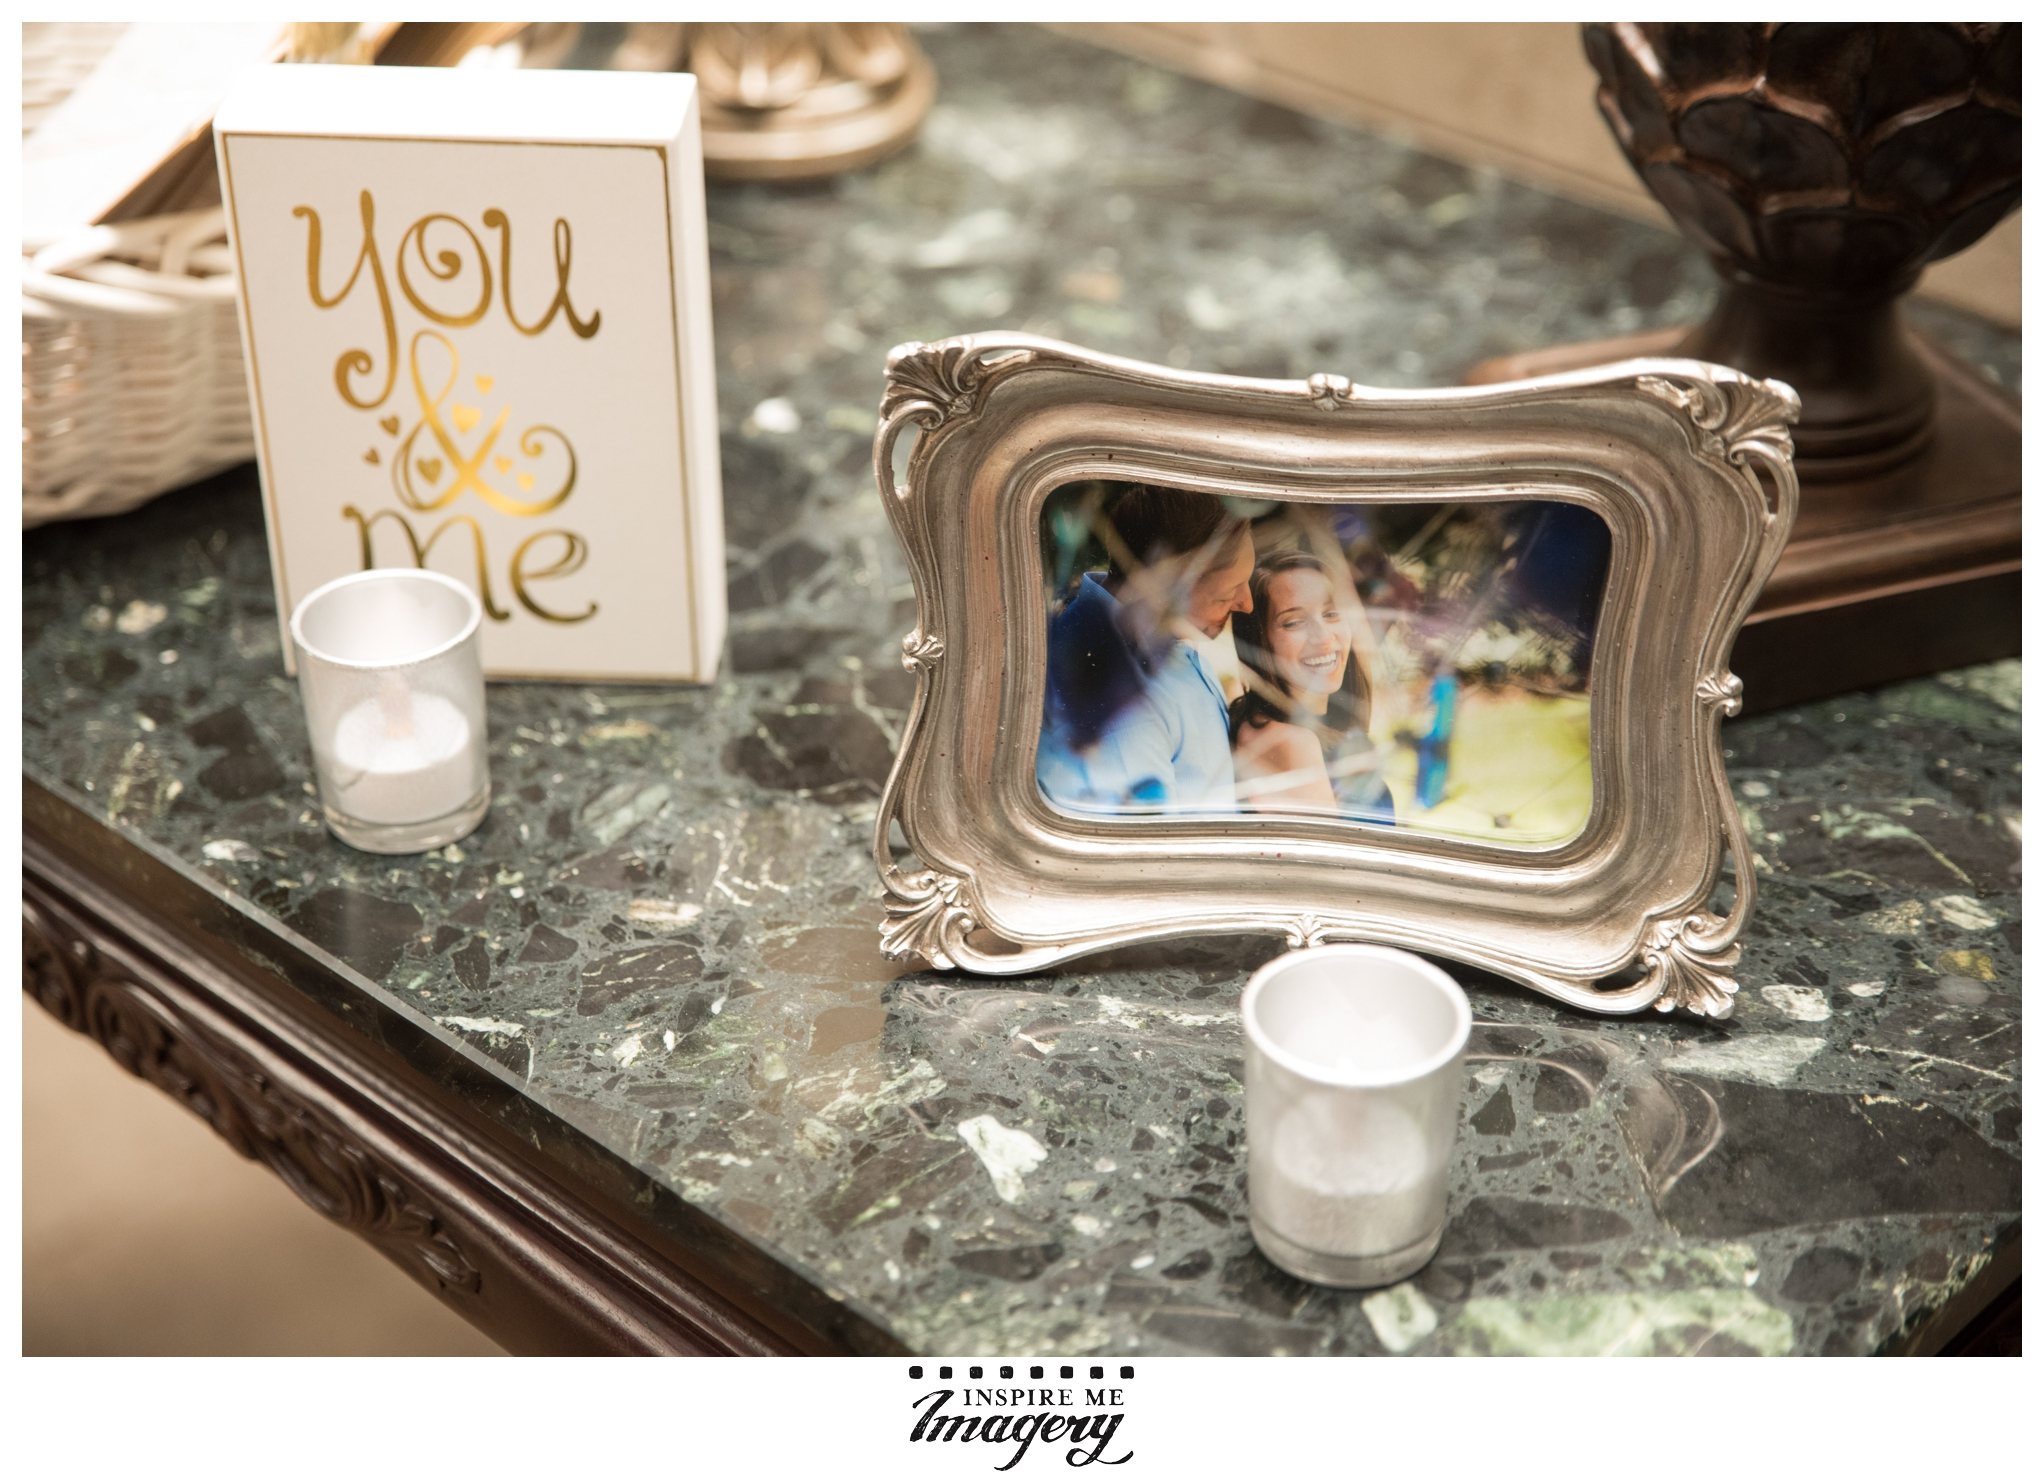 The couple had some photos from their engagement session as part of their decor. Cuteness!